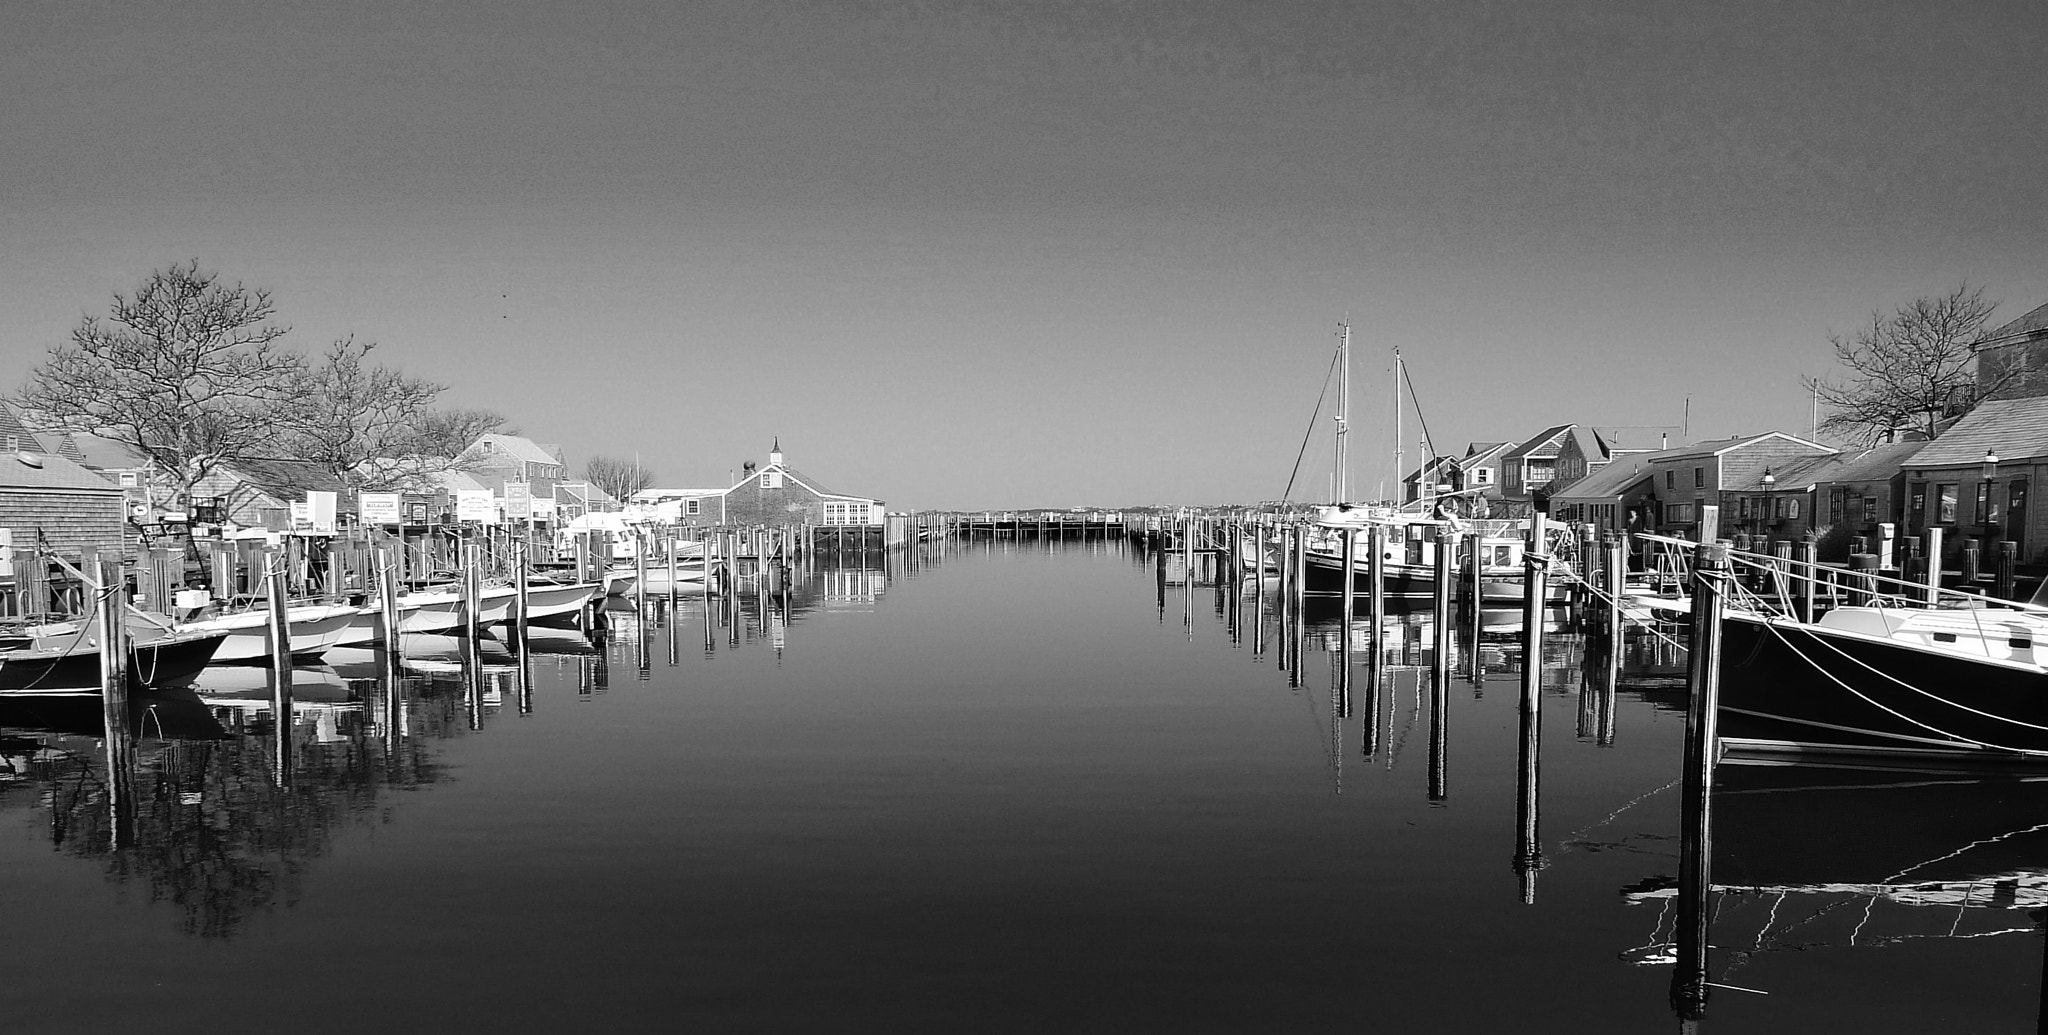 Photograph Nantucket by William Nagenda on 500px